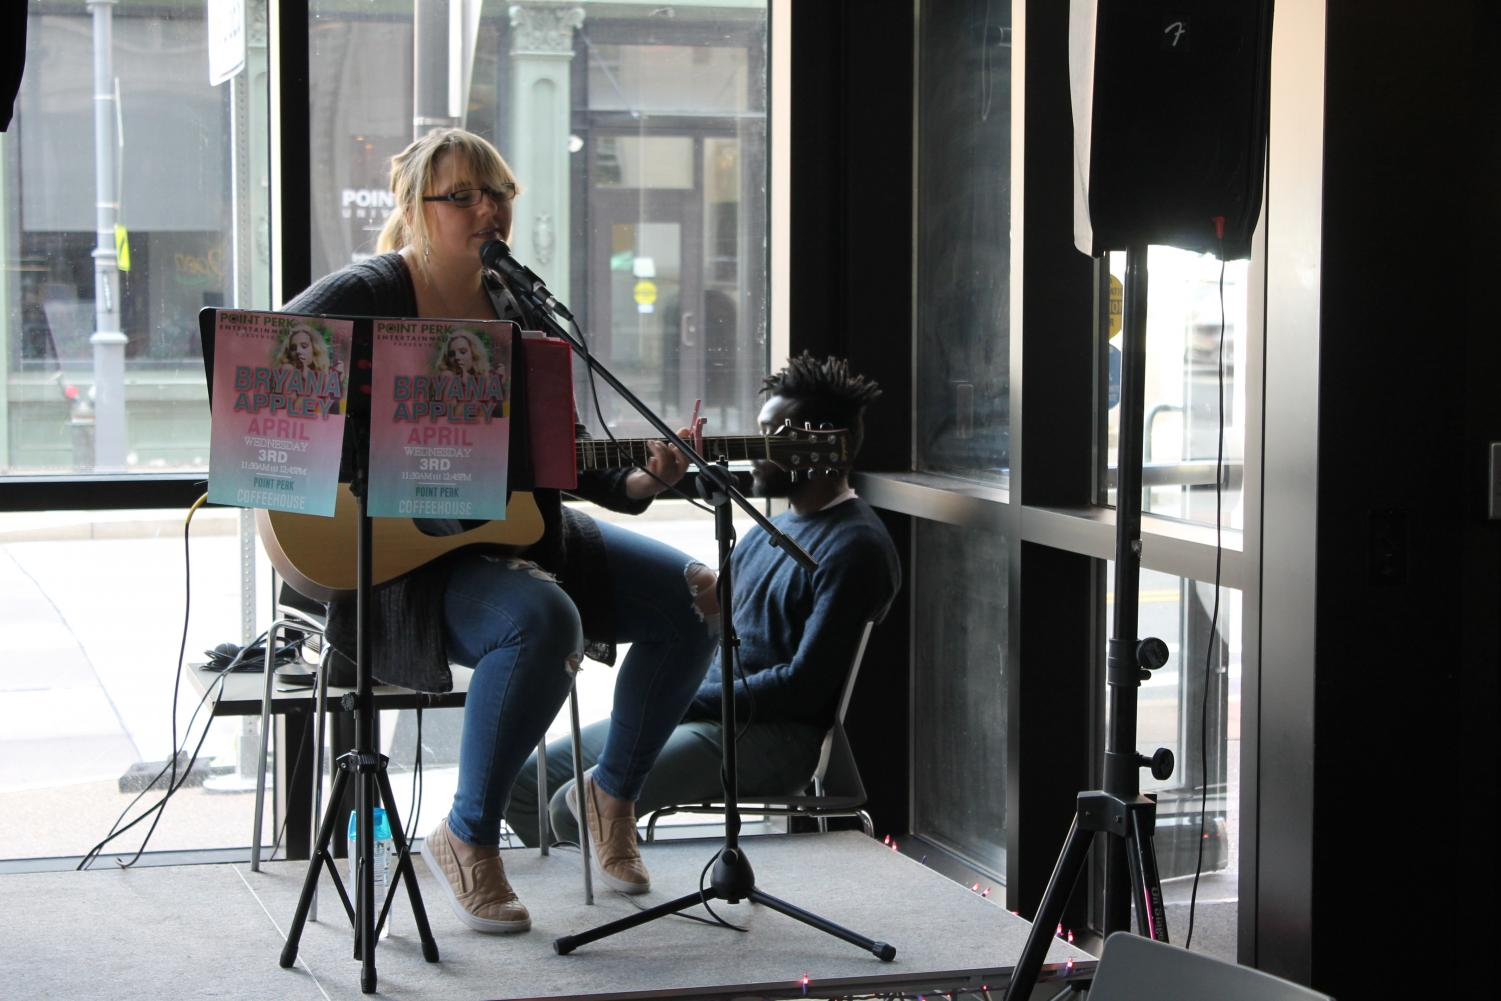 Bryana Appley performs at Point Perk for a live solo set last Wednesday.